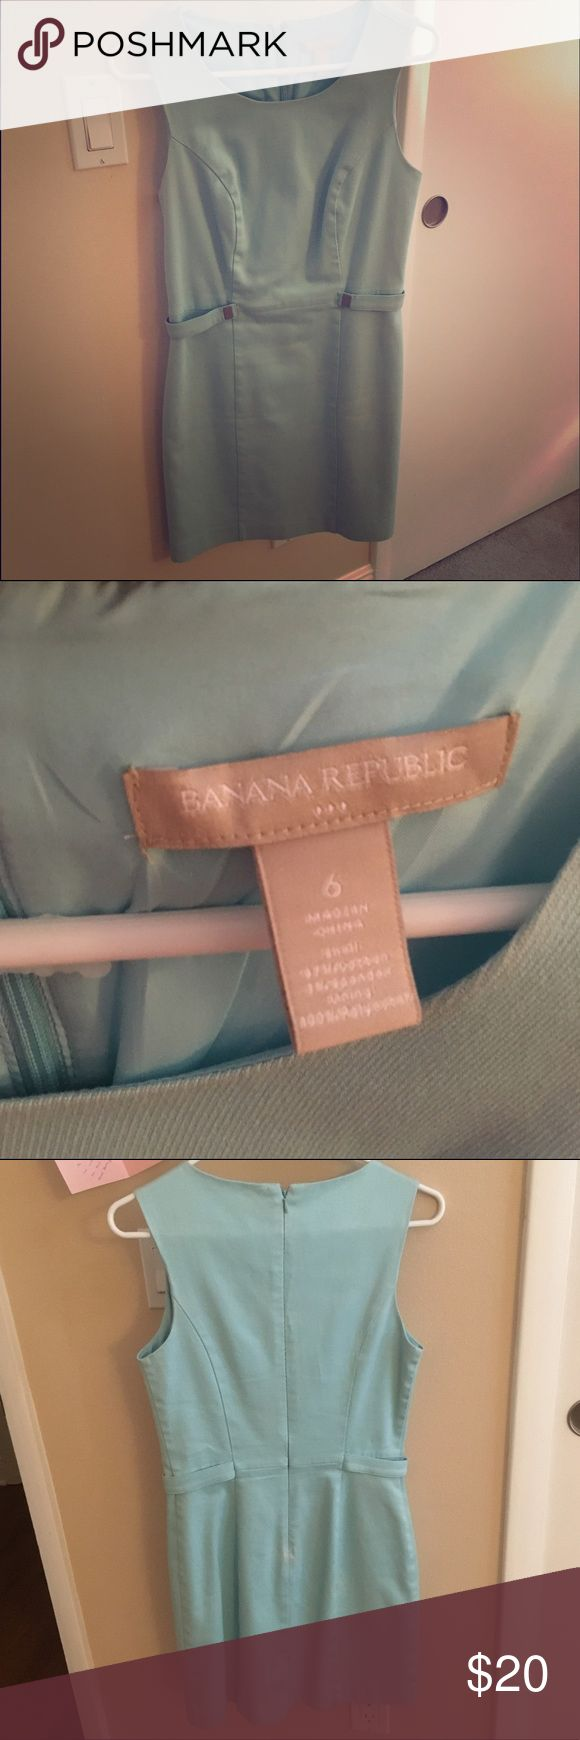 Banana Republic casual dress in Tiffany Blue Banana Republic casual dress in Tiffany Blue. Cotton Dress great for summer - has definition with the faux empire belt detail.  Zips In back. Banana Republic Dresses